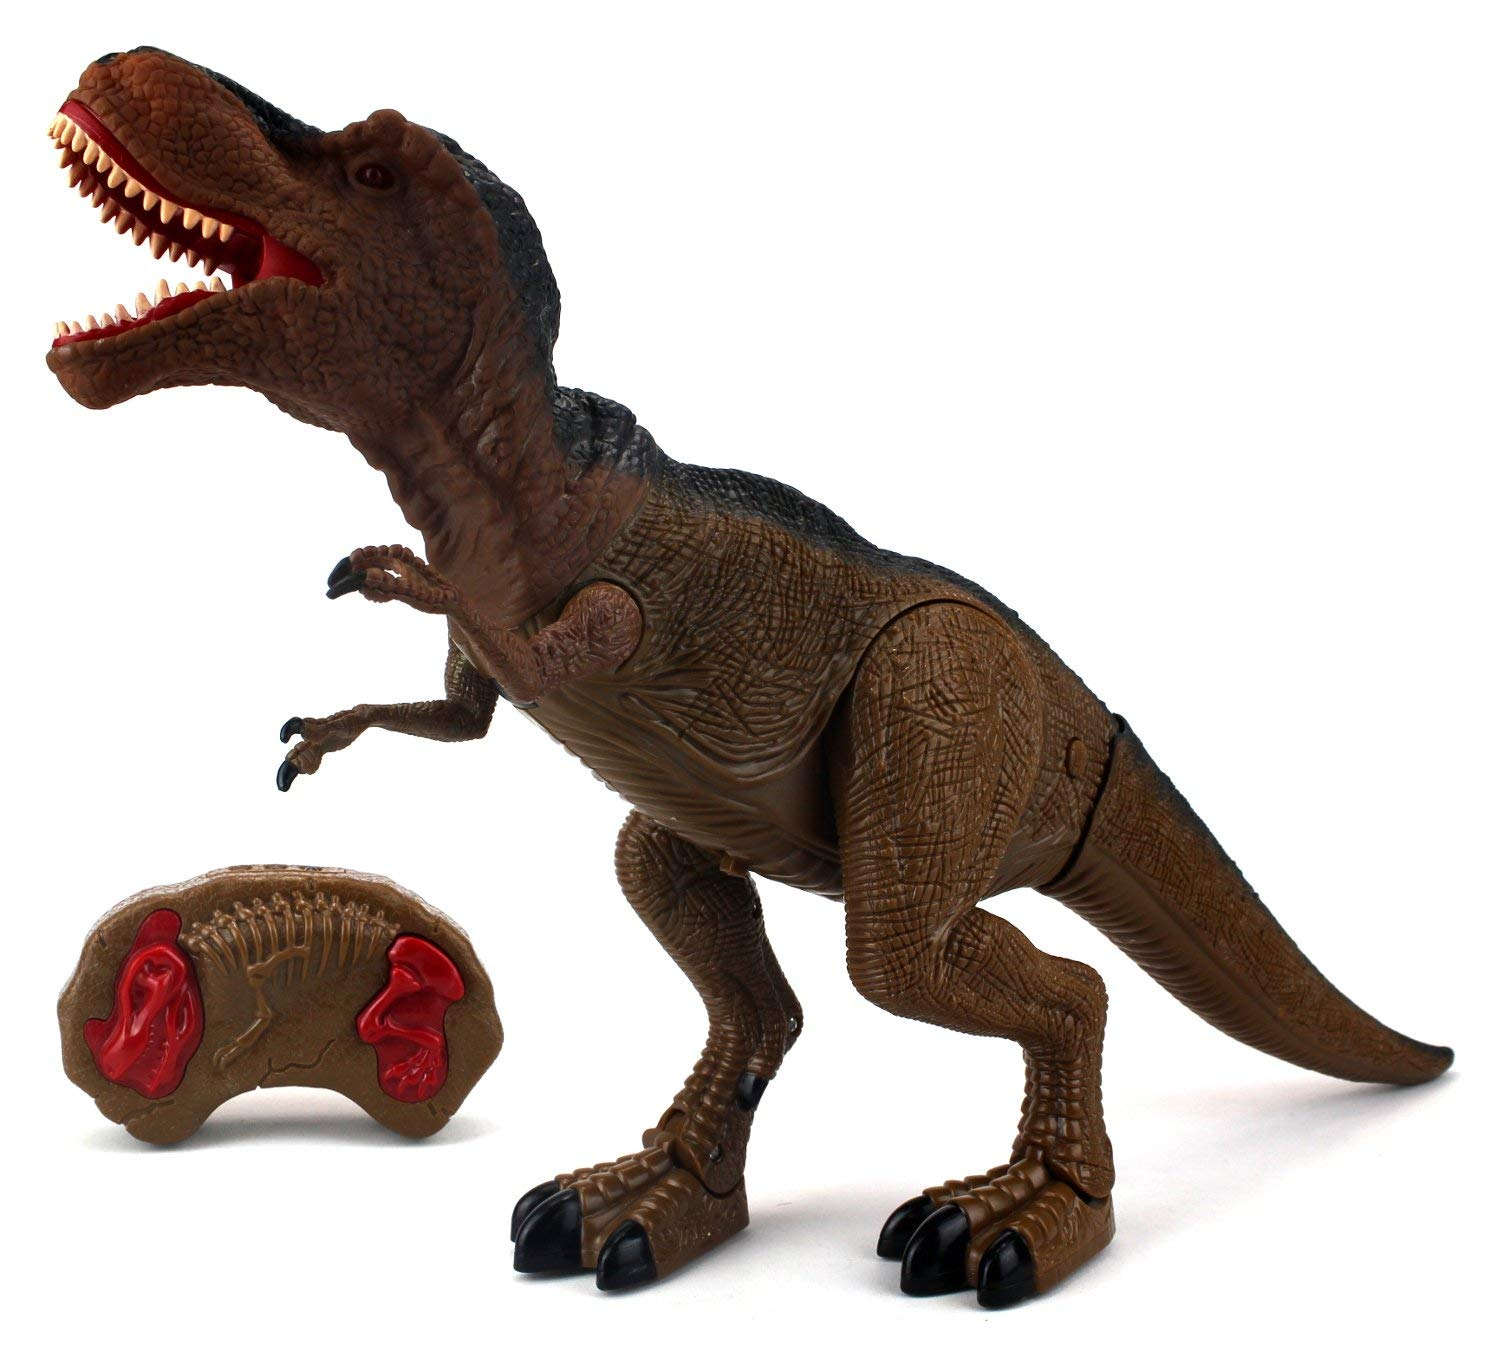 T-Rex Battery Operated Remote Control Walking Toy Dinosaur Figure w  Shaking Head, Walking Movement, Light Up... by Velocity Toys